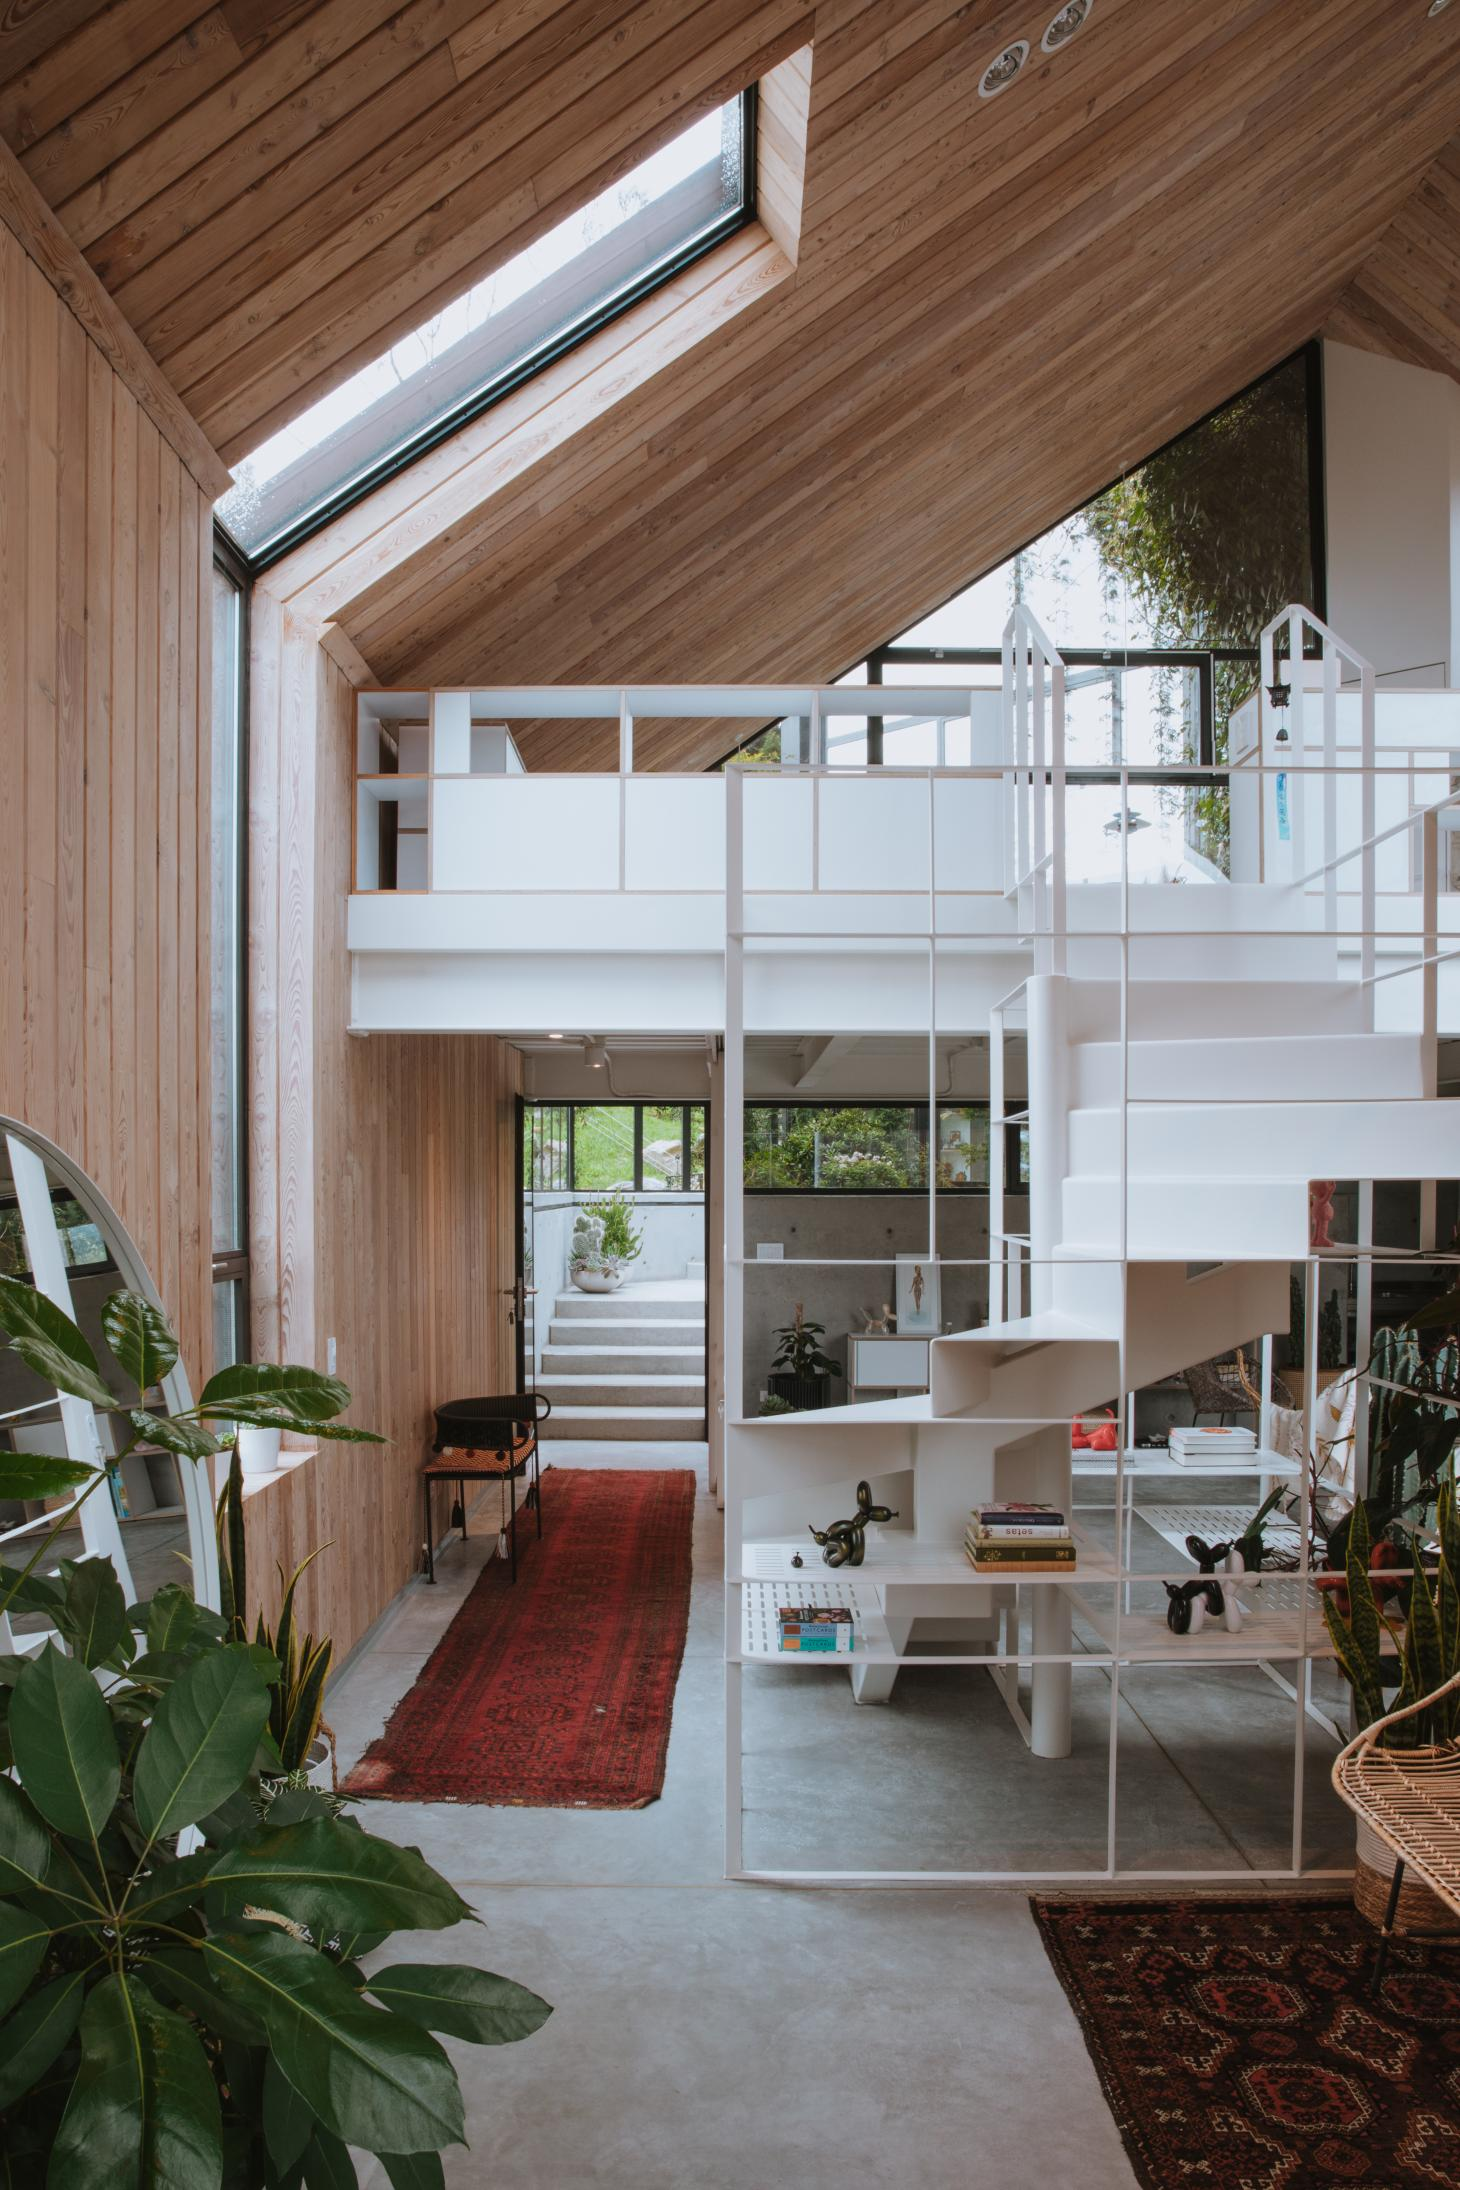 Colombian Casa SKL's visible roof pitch from the inside, clad in timber